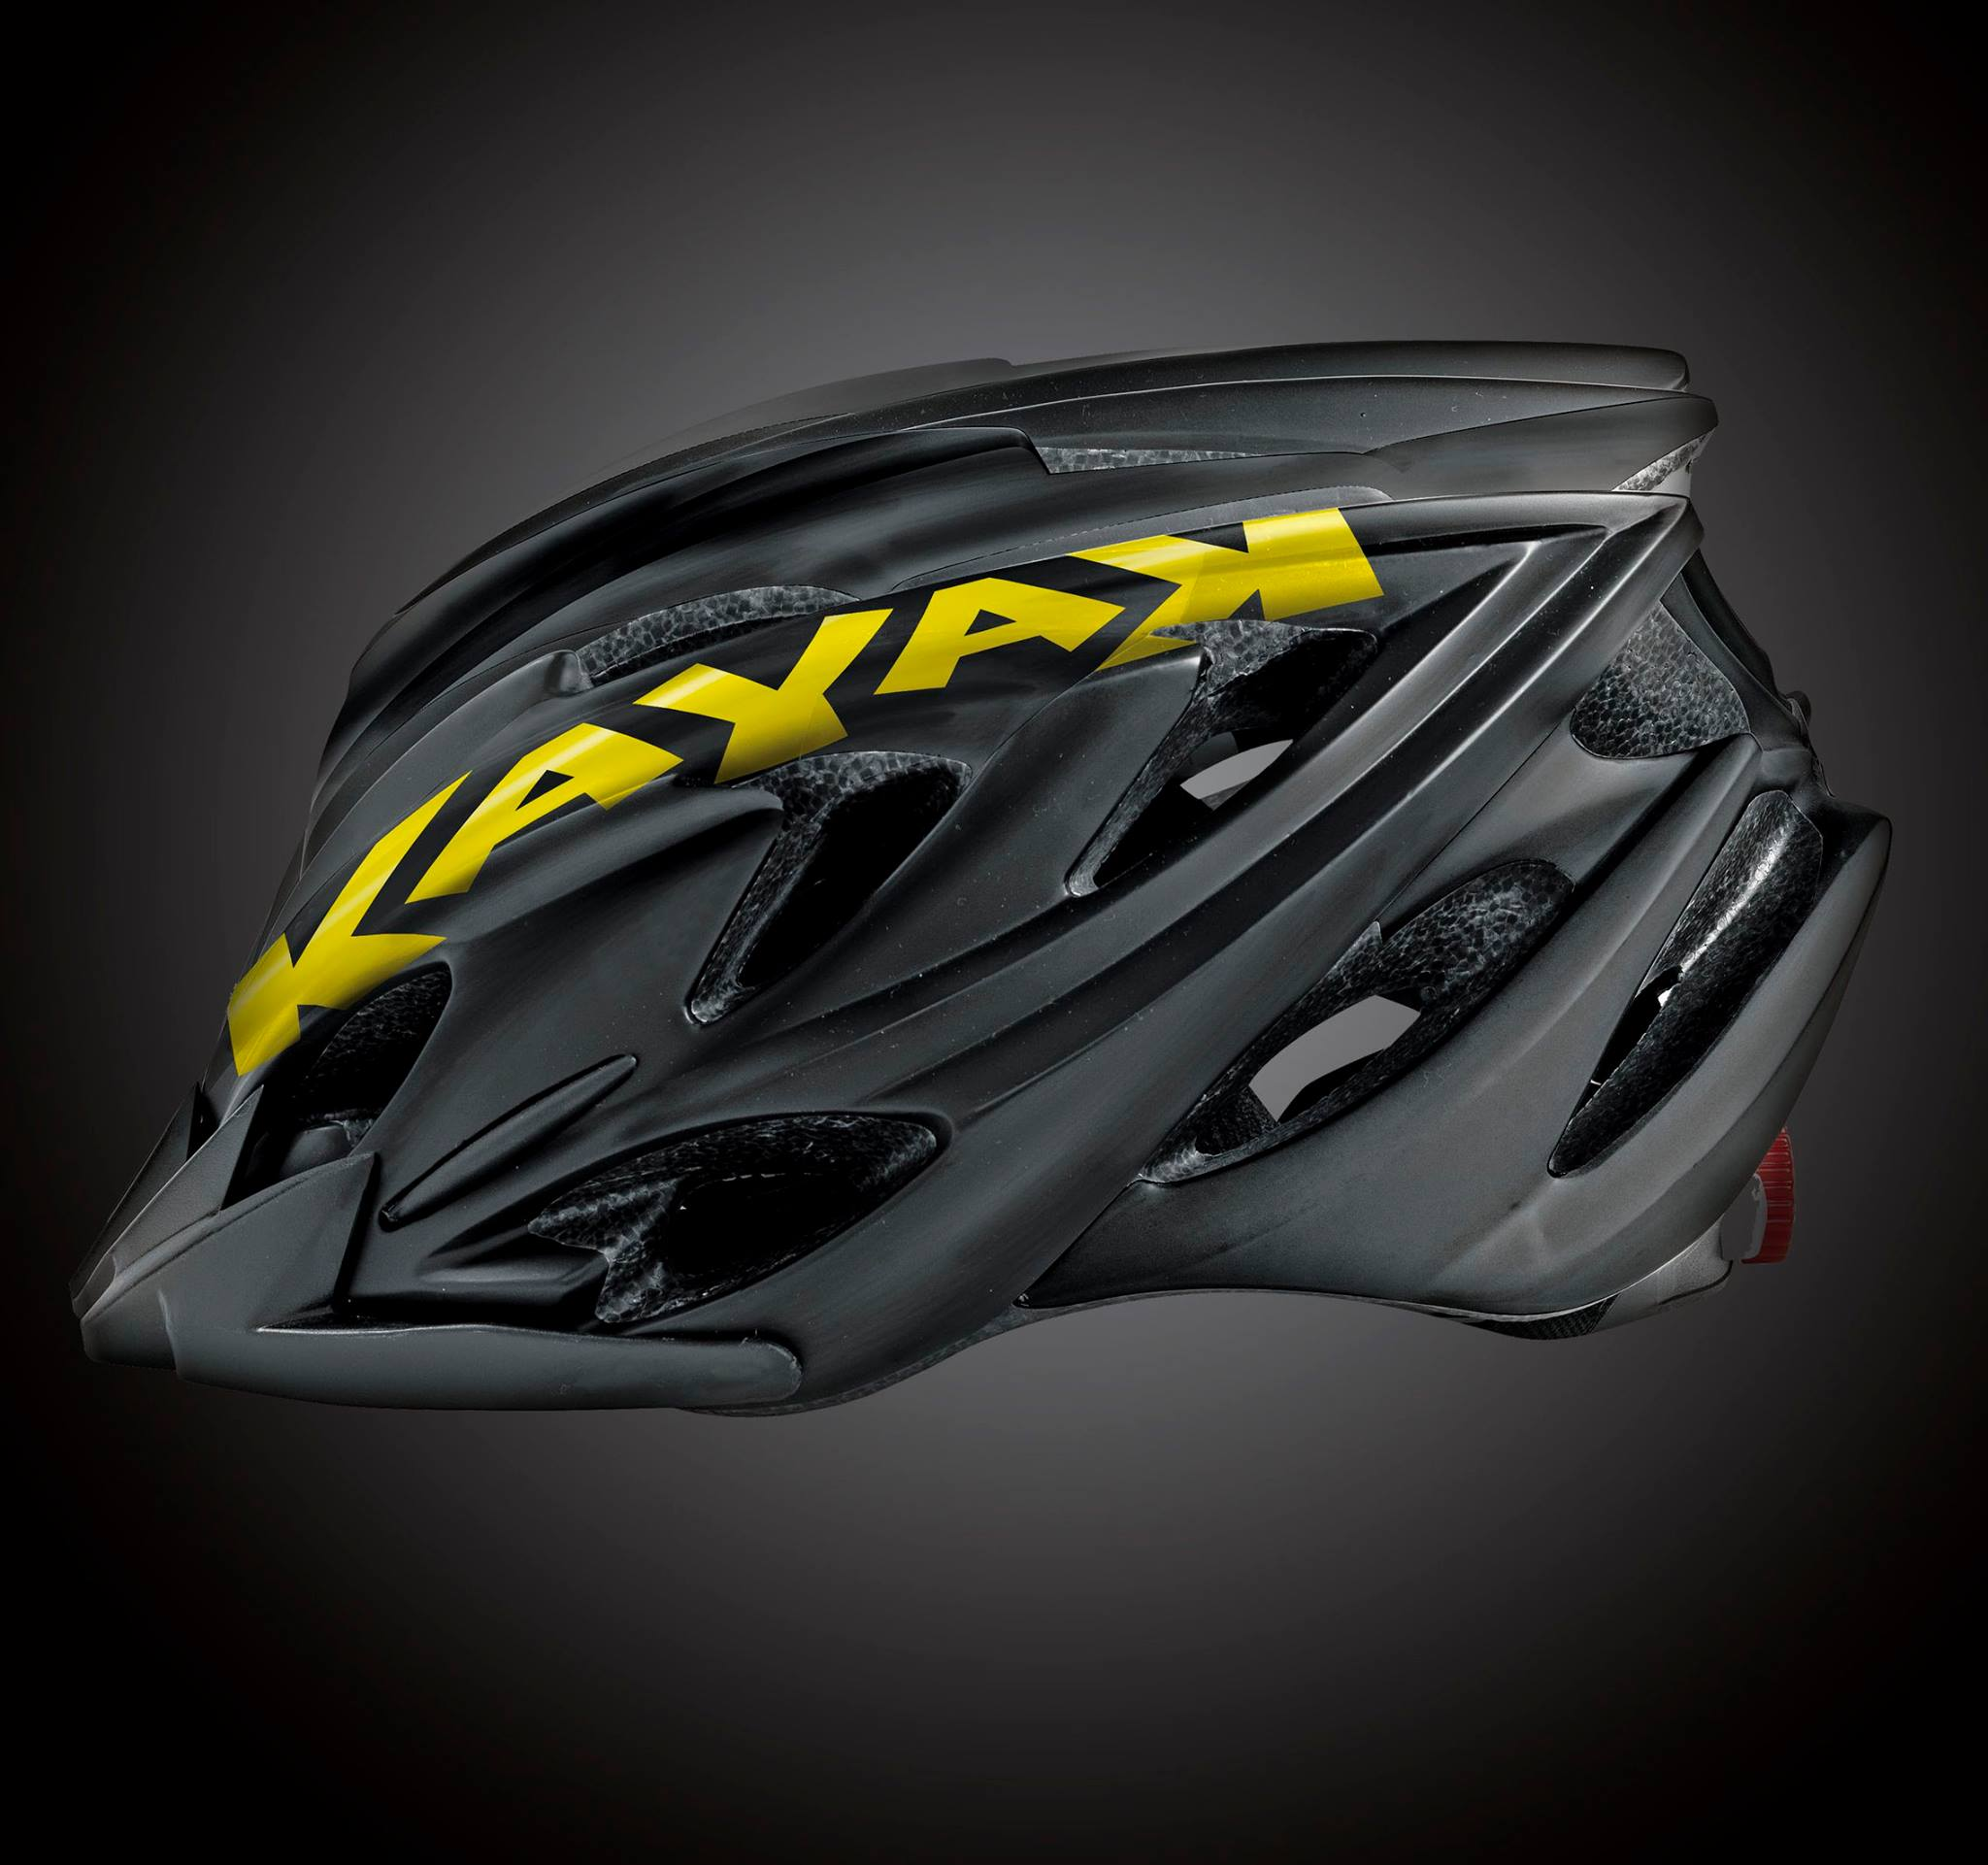 H.ZERO, the new off-road and road cycling helmets by Kayak